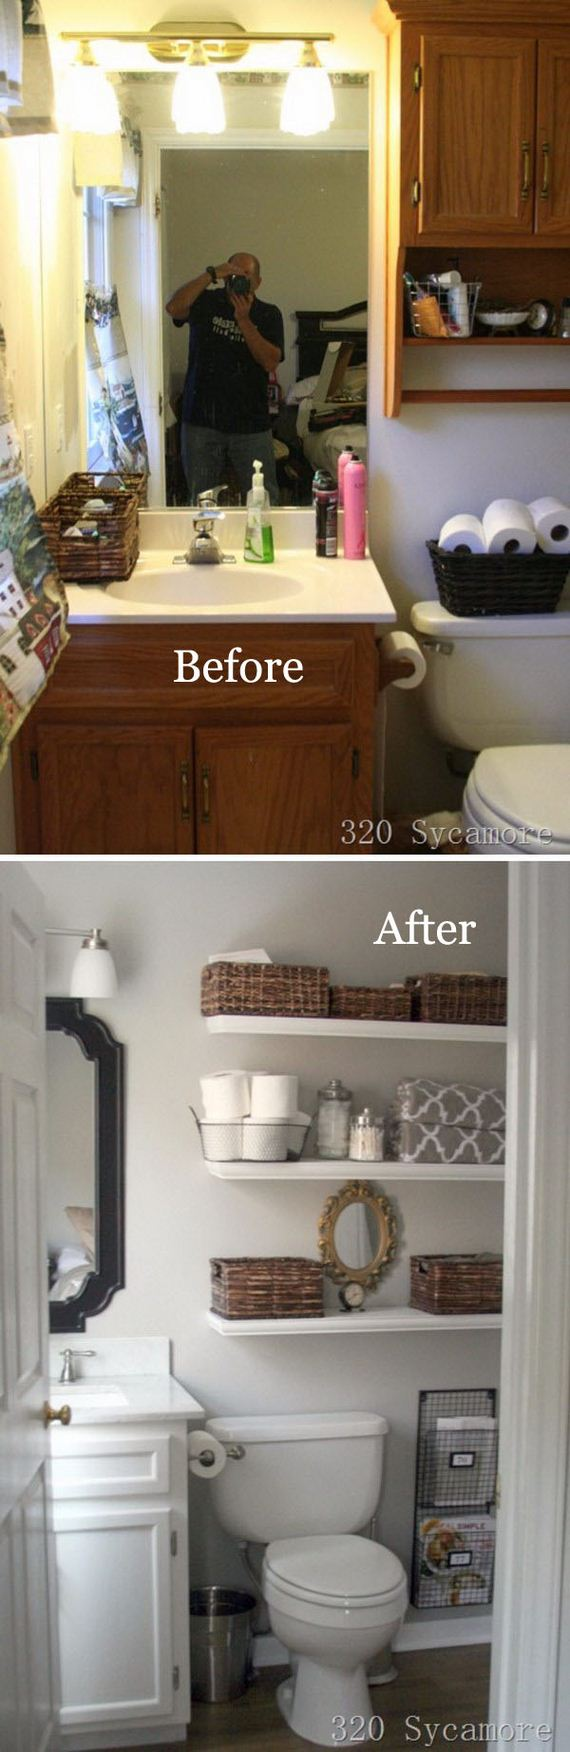 16-awesome-bathroom-makeovers